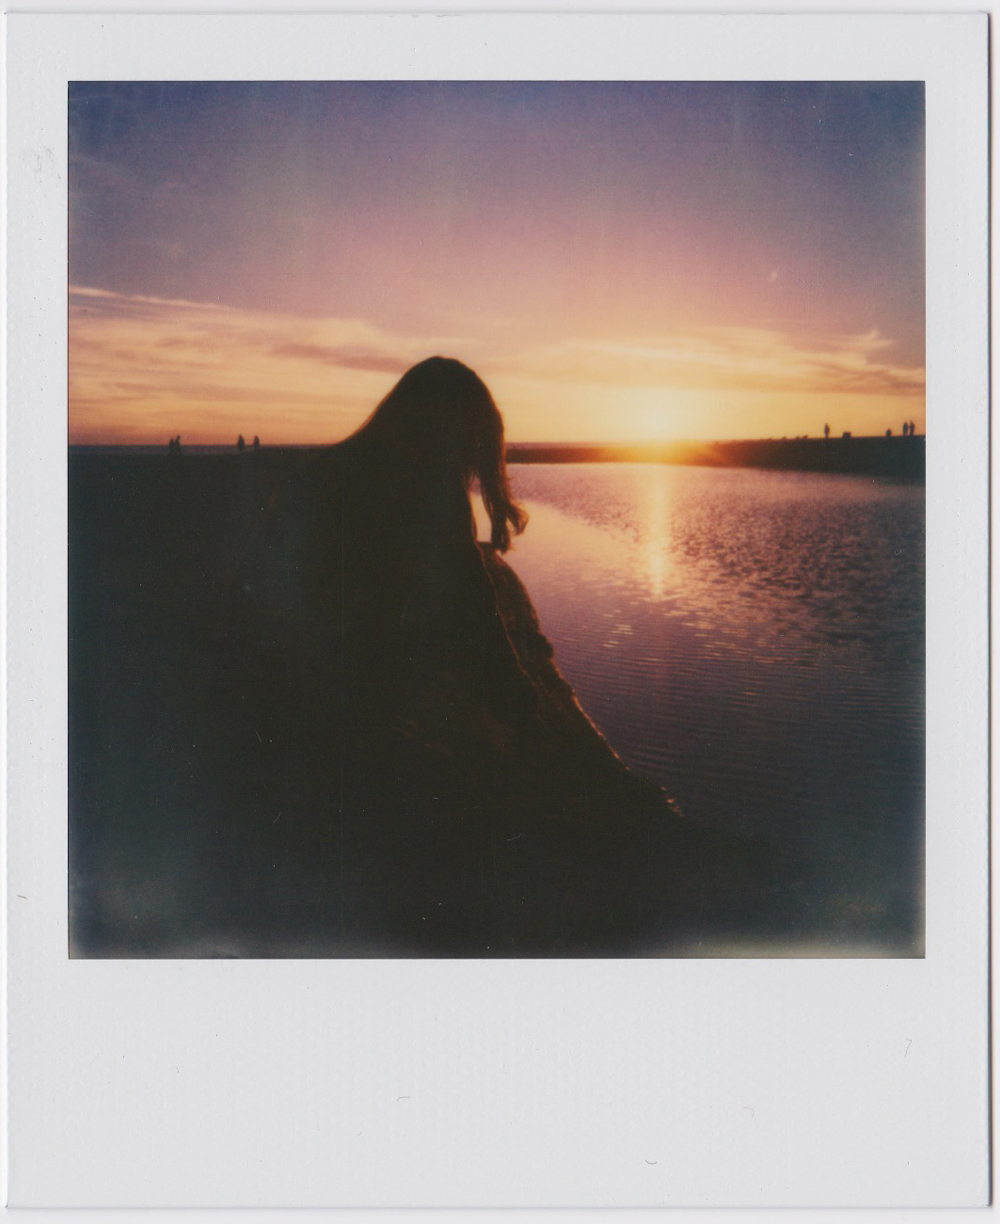 whoiscx_christina_choi_photography_polaroid_film_1.jpg